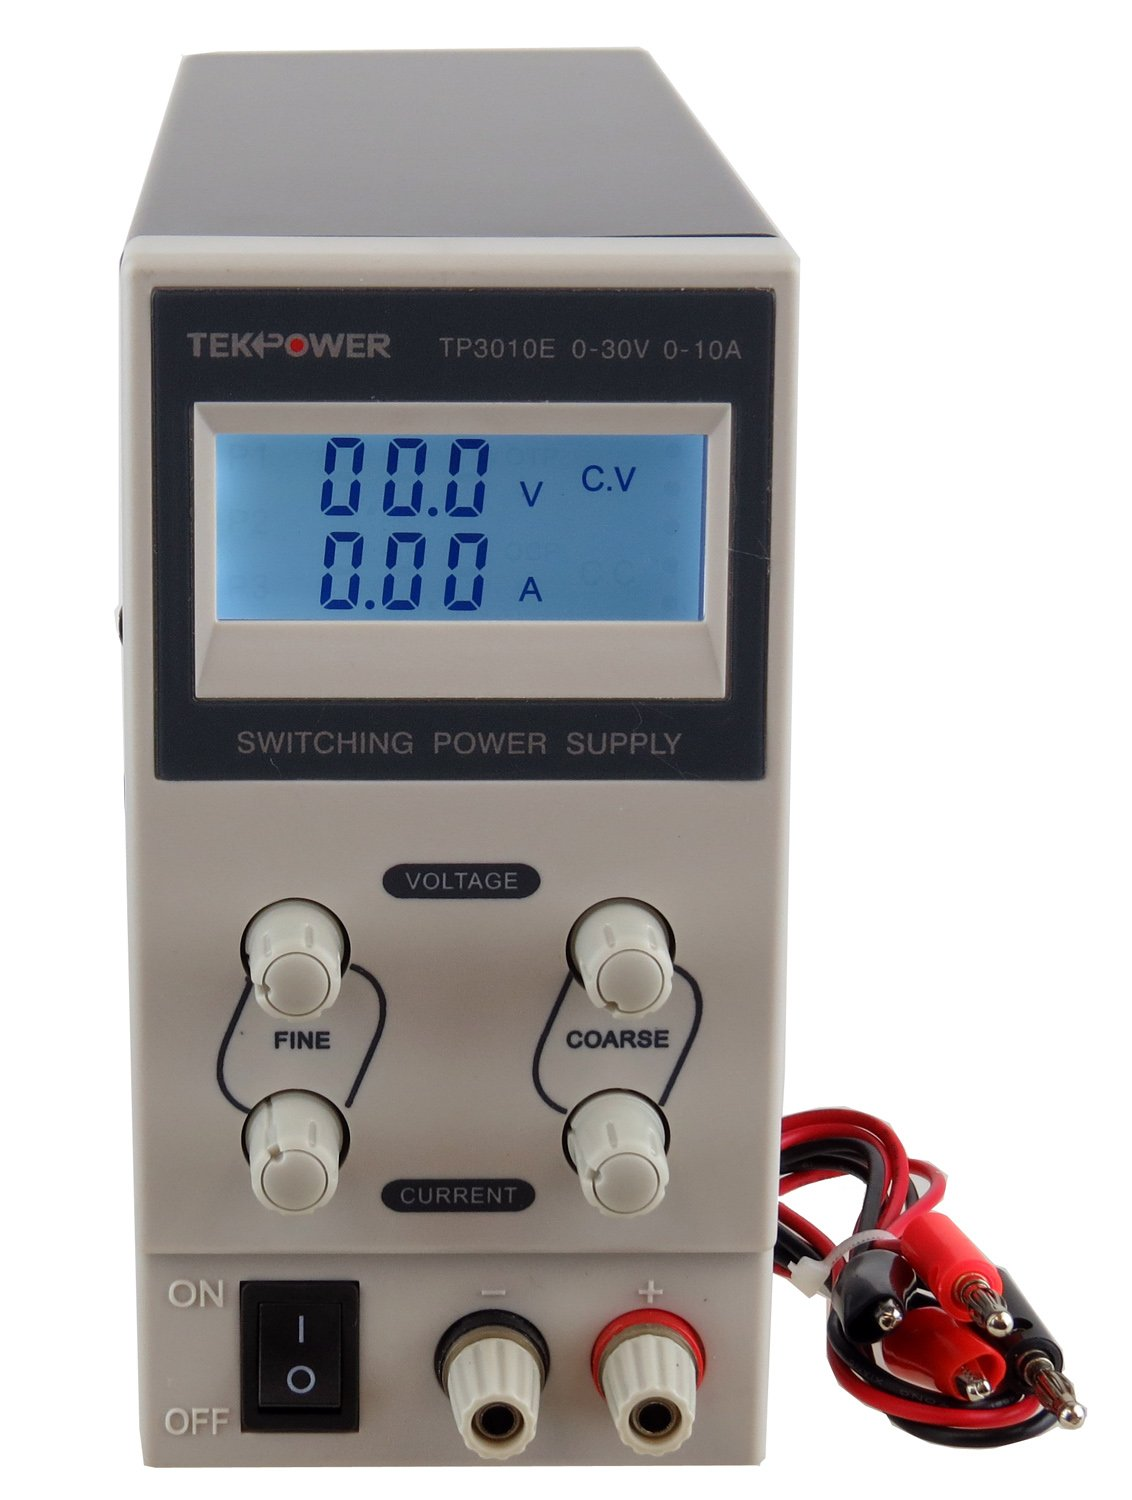 TekPower TP3010E DC Adjustable Switching Power Supply 30V 10A Digital Display